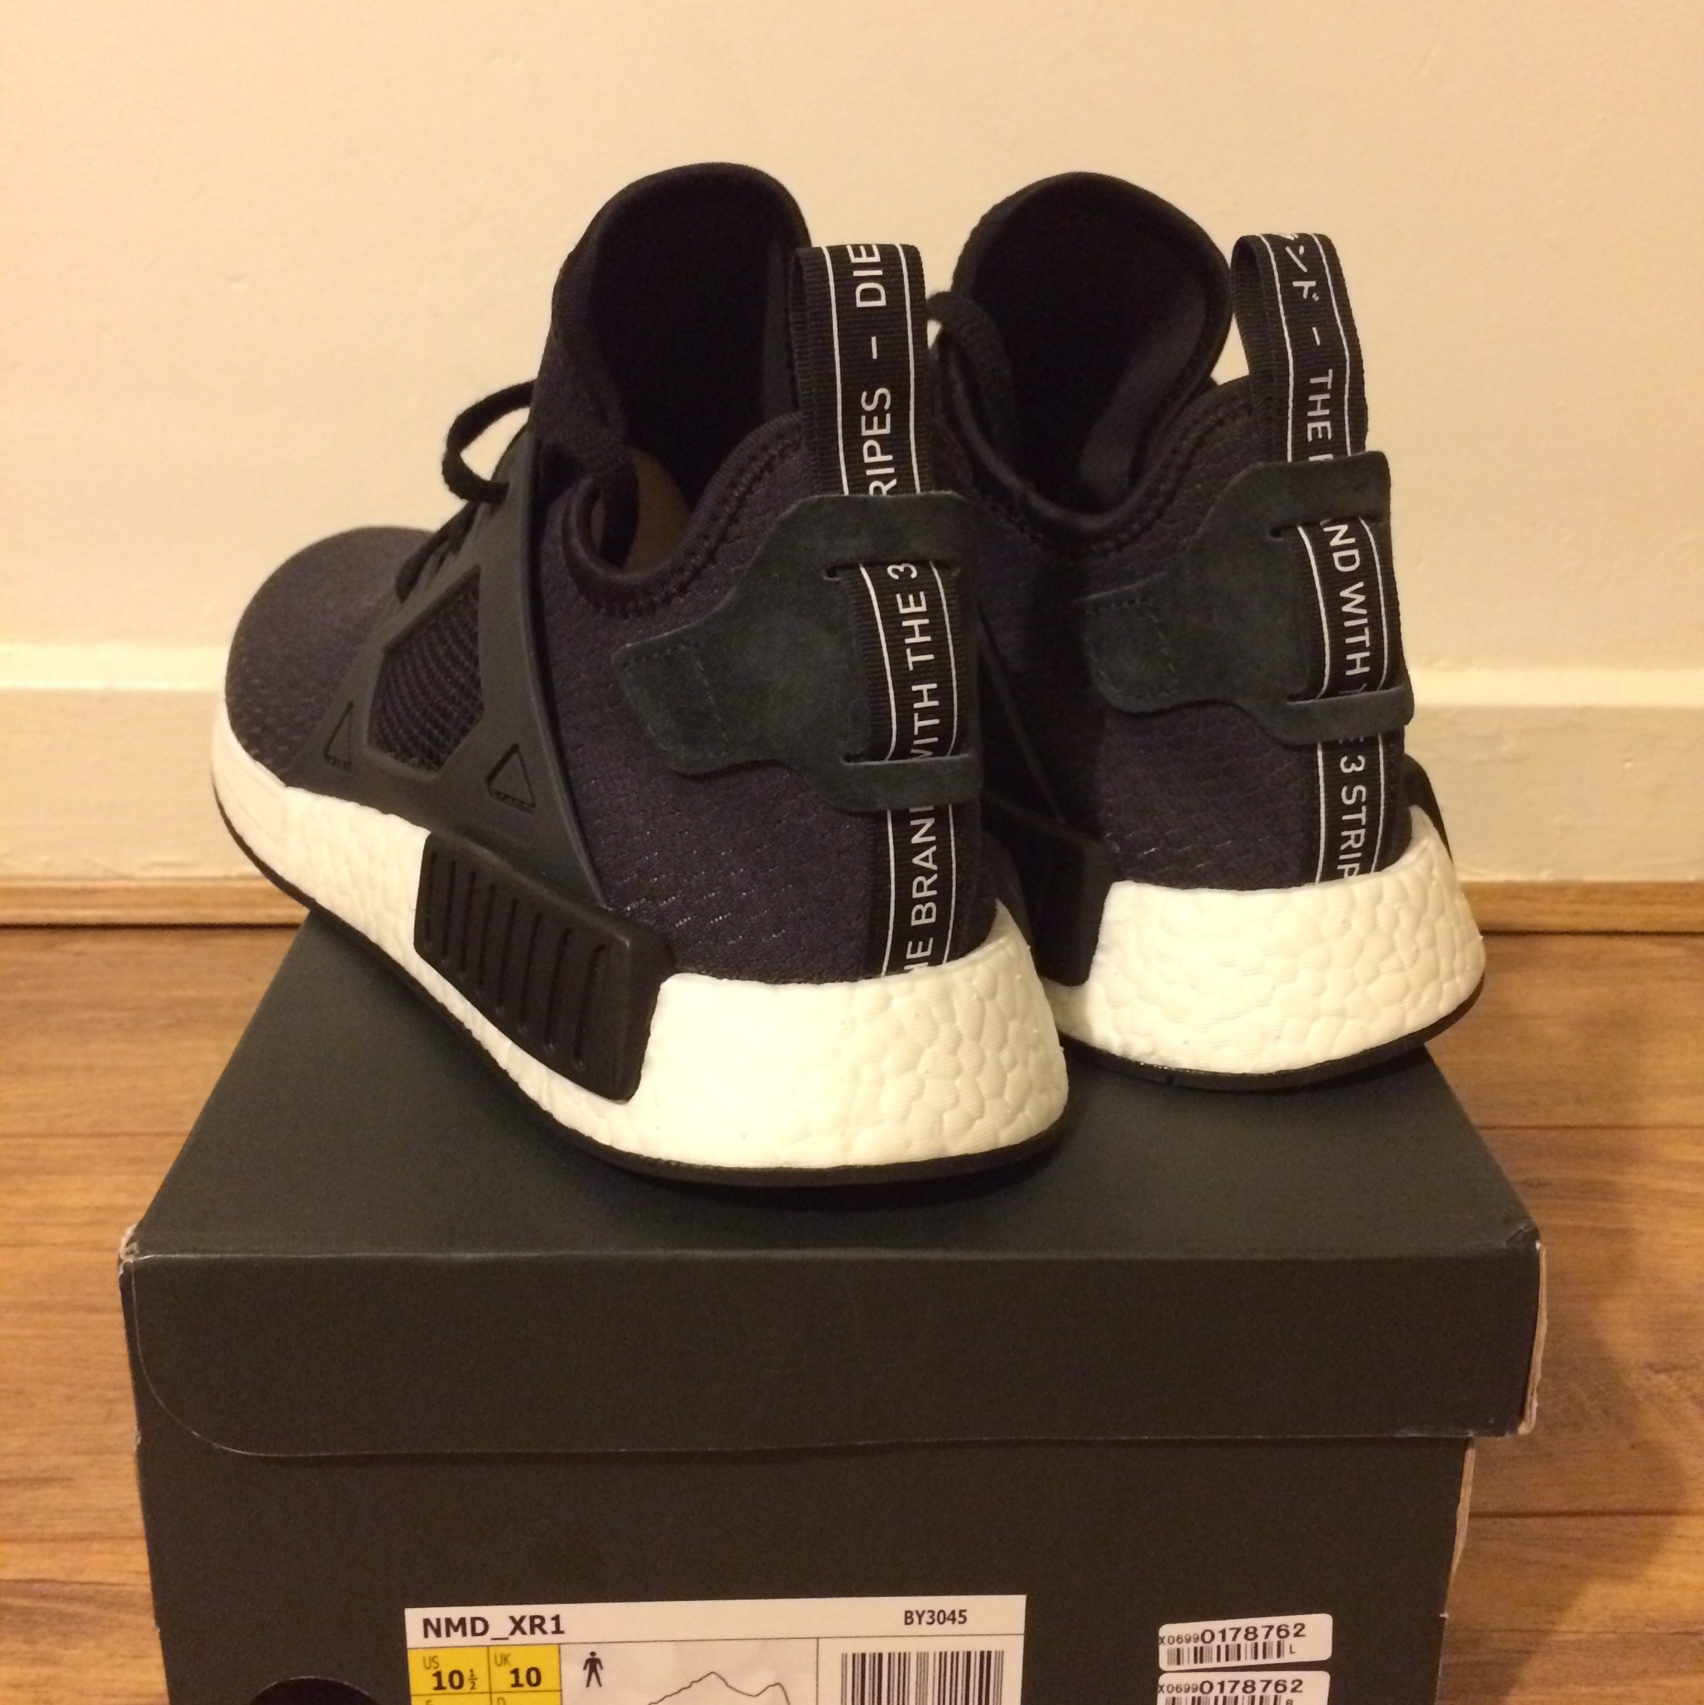 separation shoes b4e99 9881e Adidas NMD XR1 Mens size UK 10 Black and White 100%... - Depop